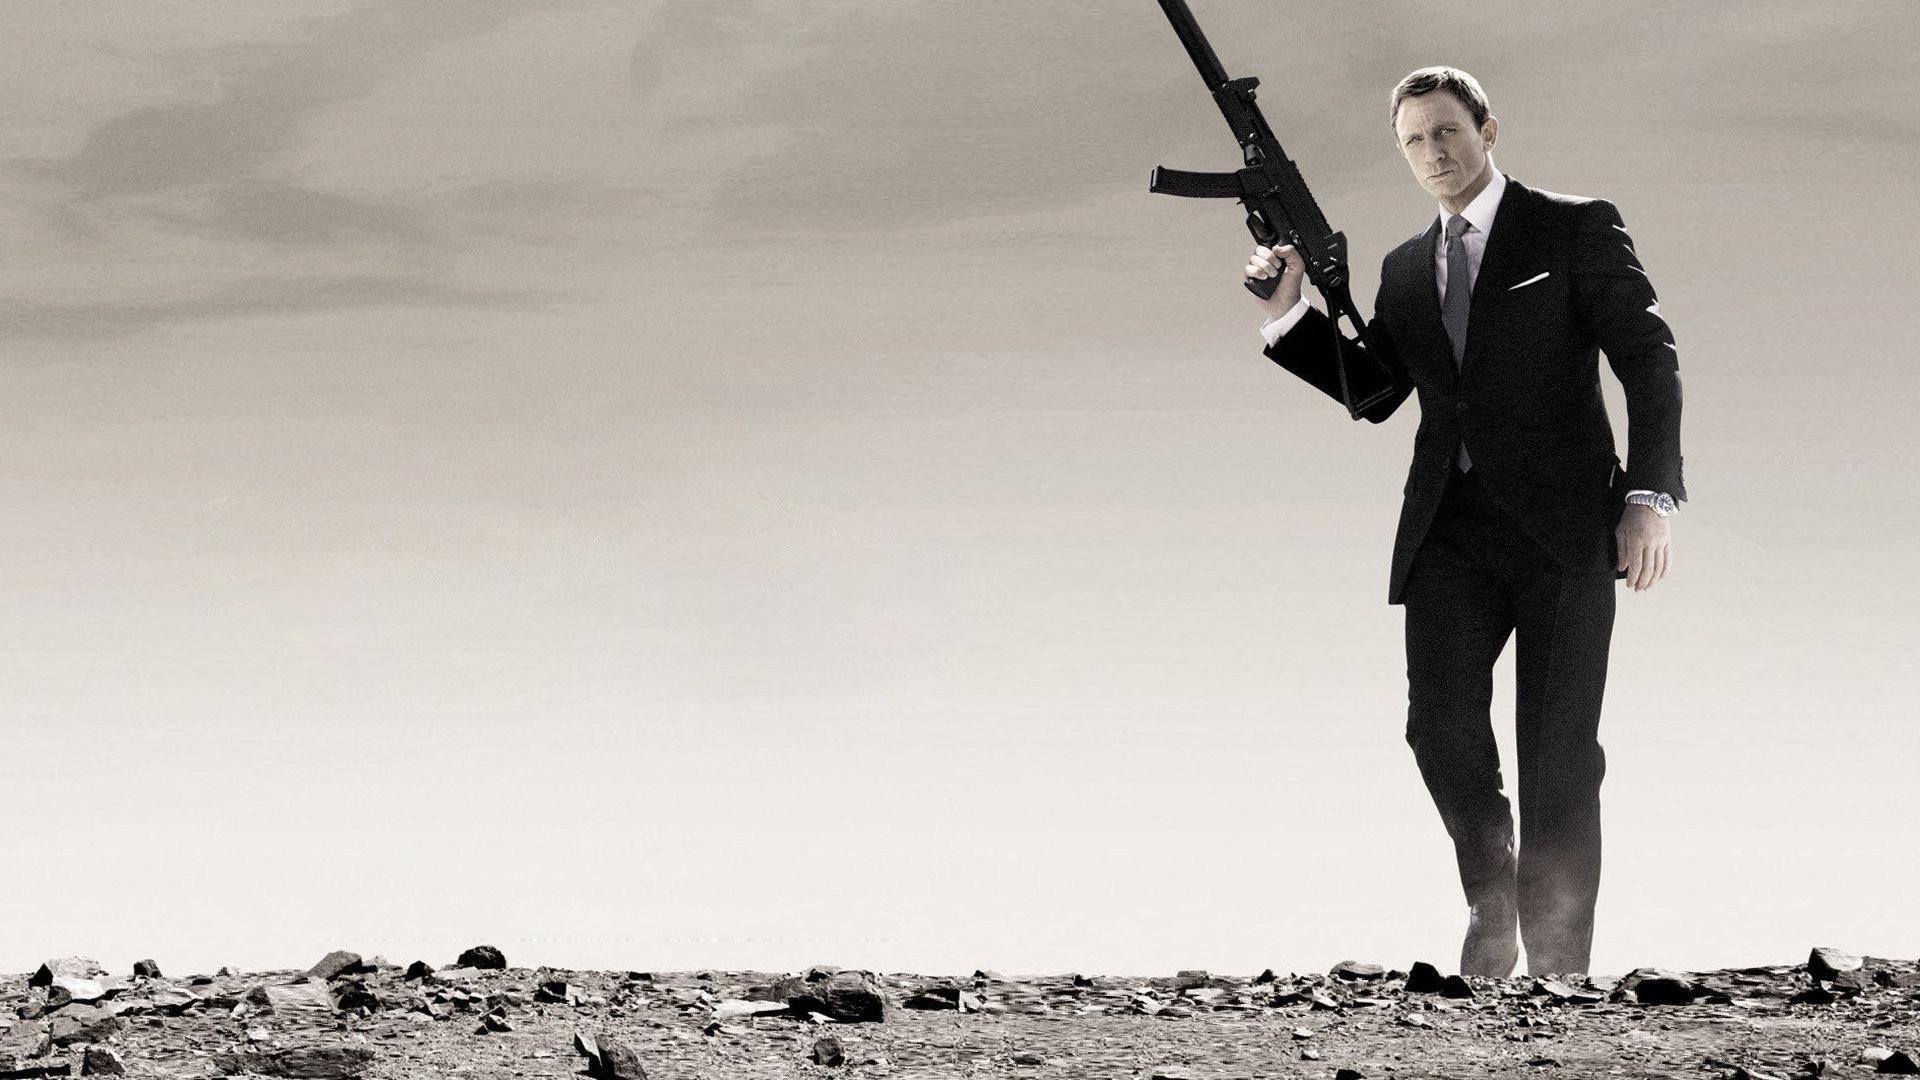 Wallpaper is also available for the other James Bond Movies: